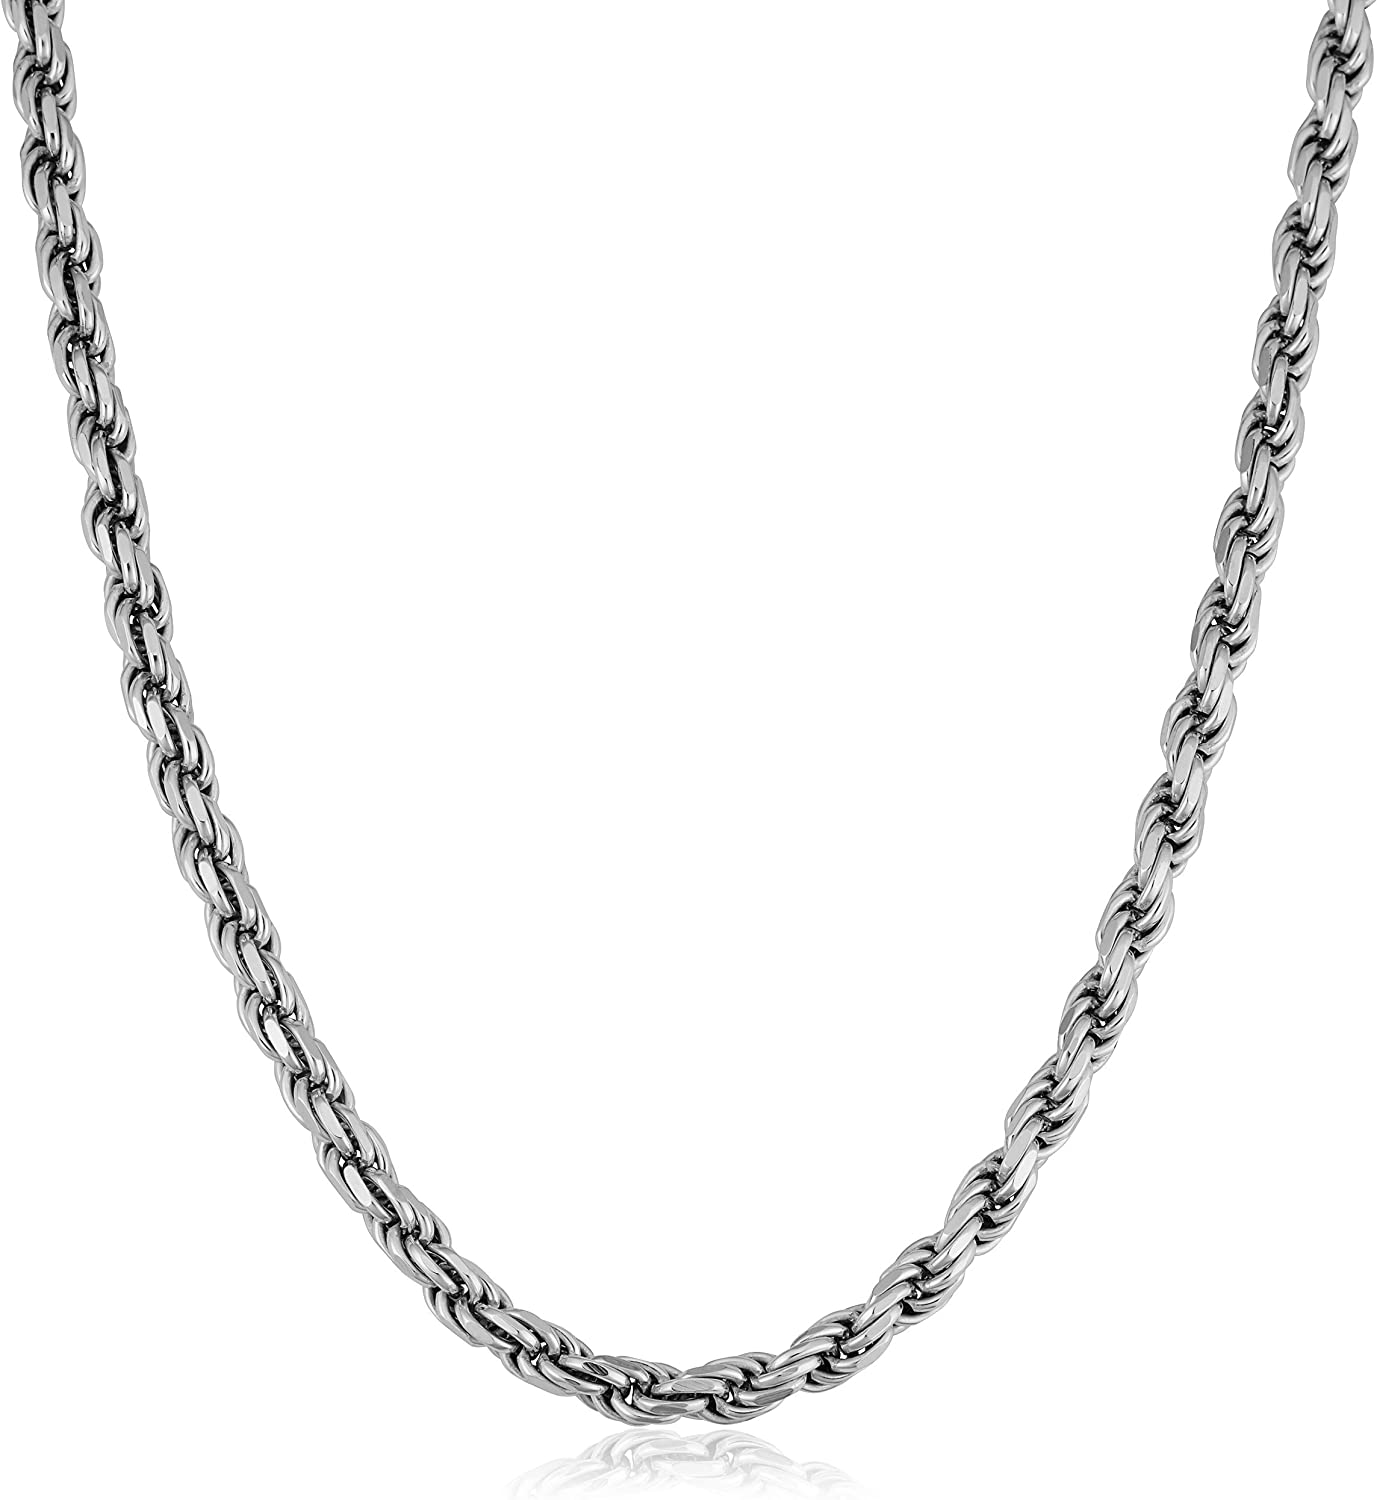 6MM 7.5MM,8.5MM- Mens Rope Chain Sterling Silver Rope Chain Necklace For Men 5MM Mens Rope Chain Bracelet Mens Italian 925 Sterling Silver Diamond Cut Rope Chain Necklace